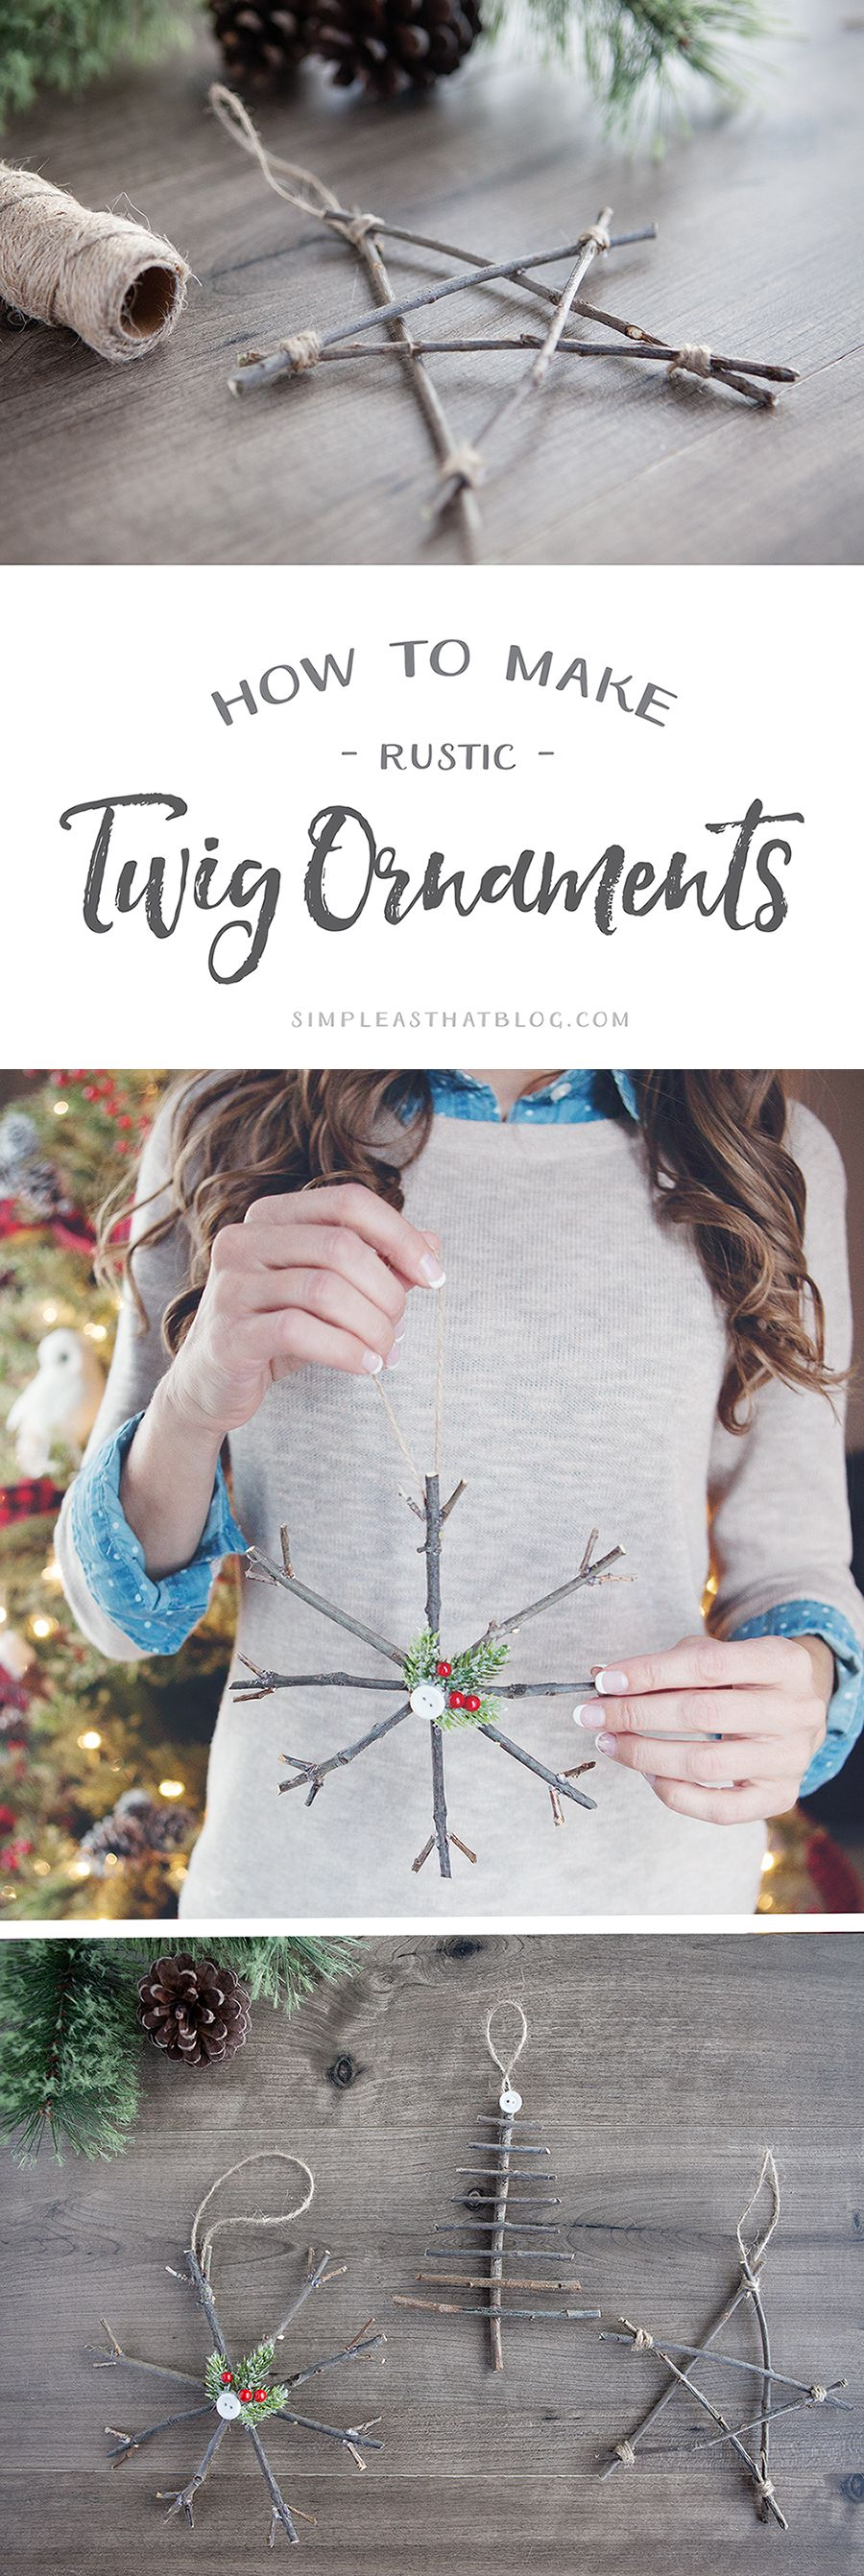 How to Make Rustic twig Christmas Ornaments is part of Natural Christmas decor - Bring a touch of nature indoors this year as you decorate your tree  Learn how to make rustic twig Christmas ornaments!